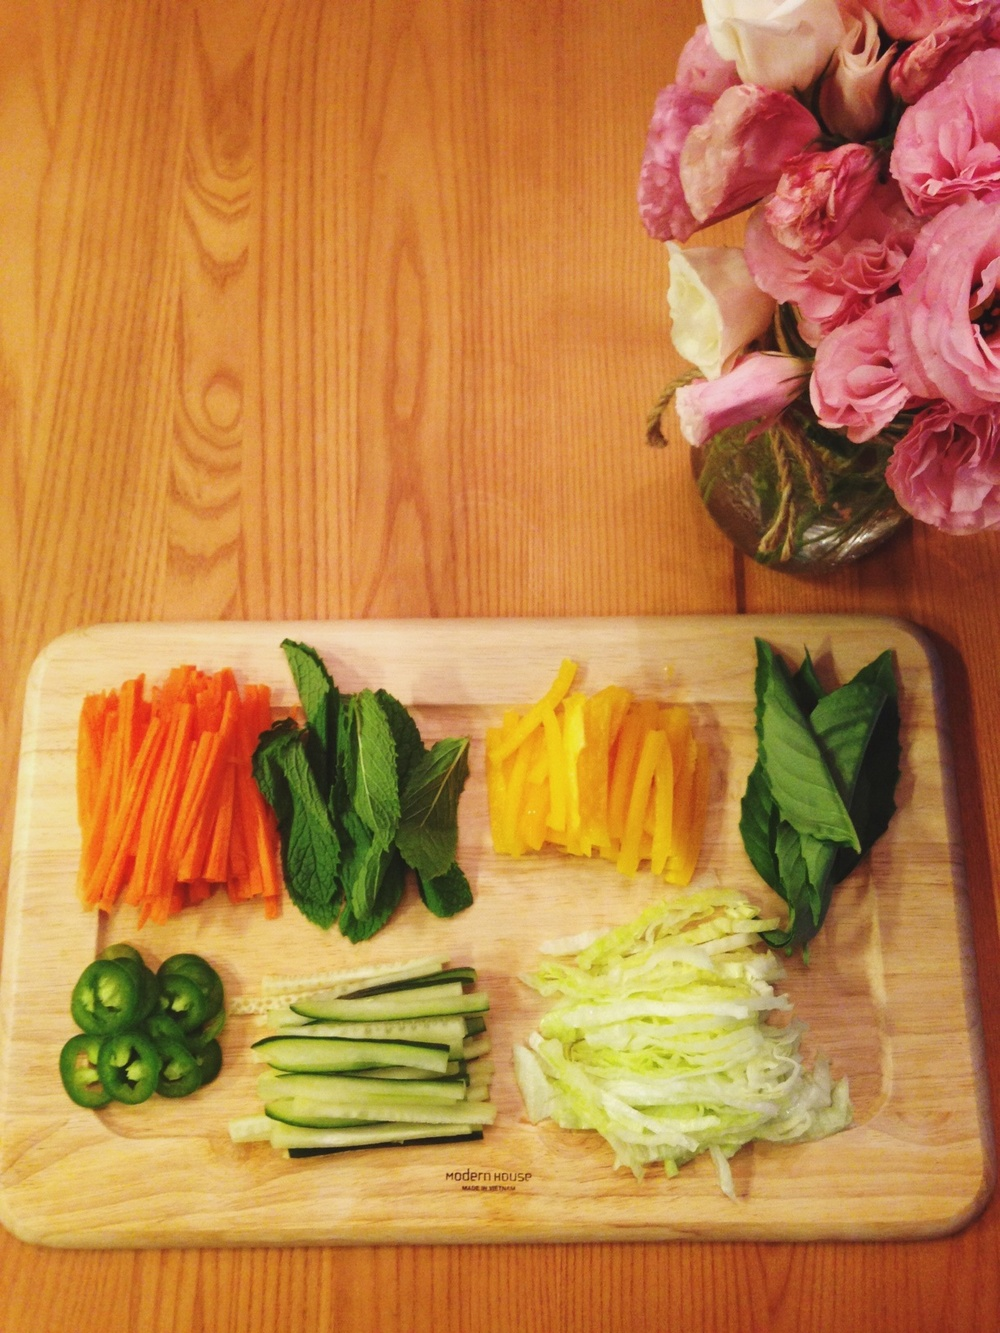 Summer is here! Summer rolls (inspired by  Cupcakes and Cashmere  and  Food Tube )